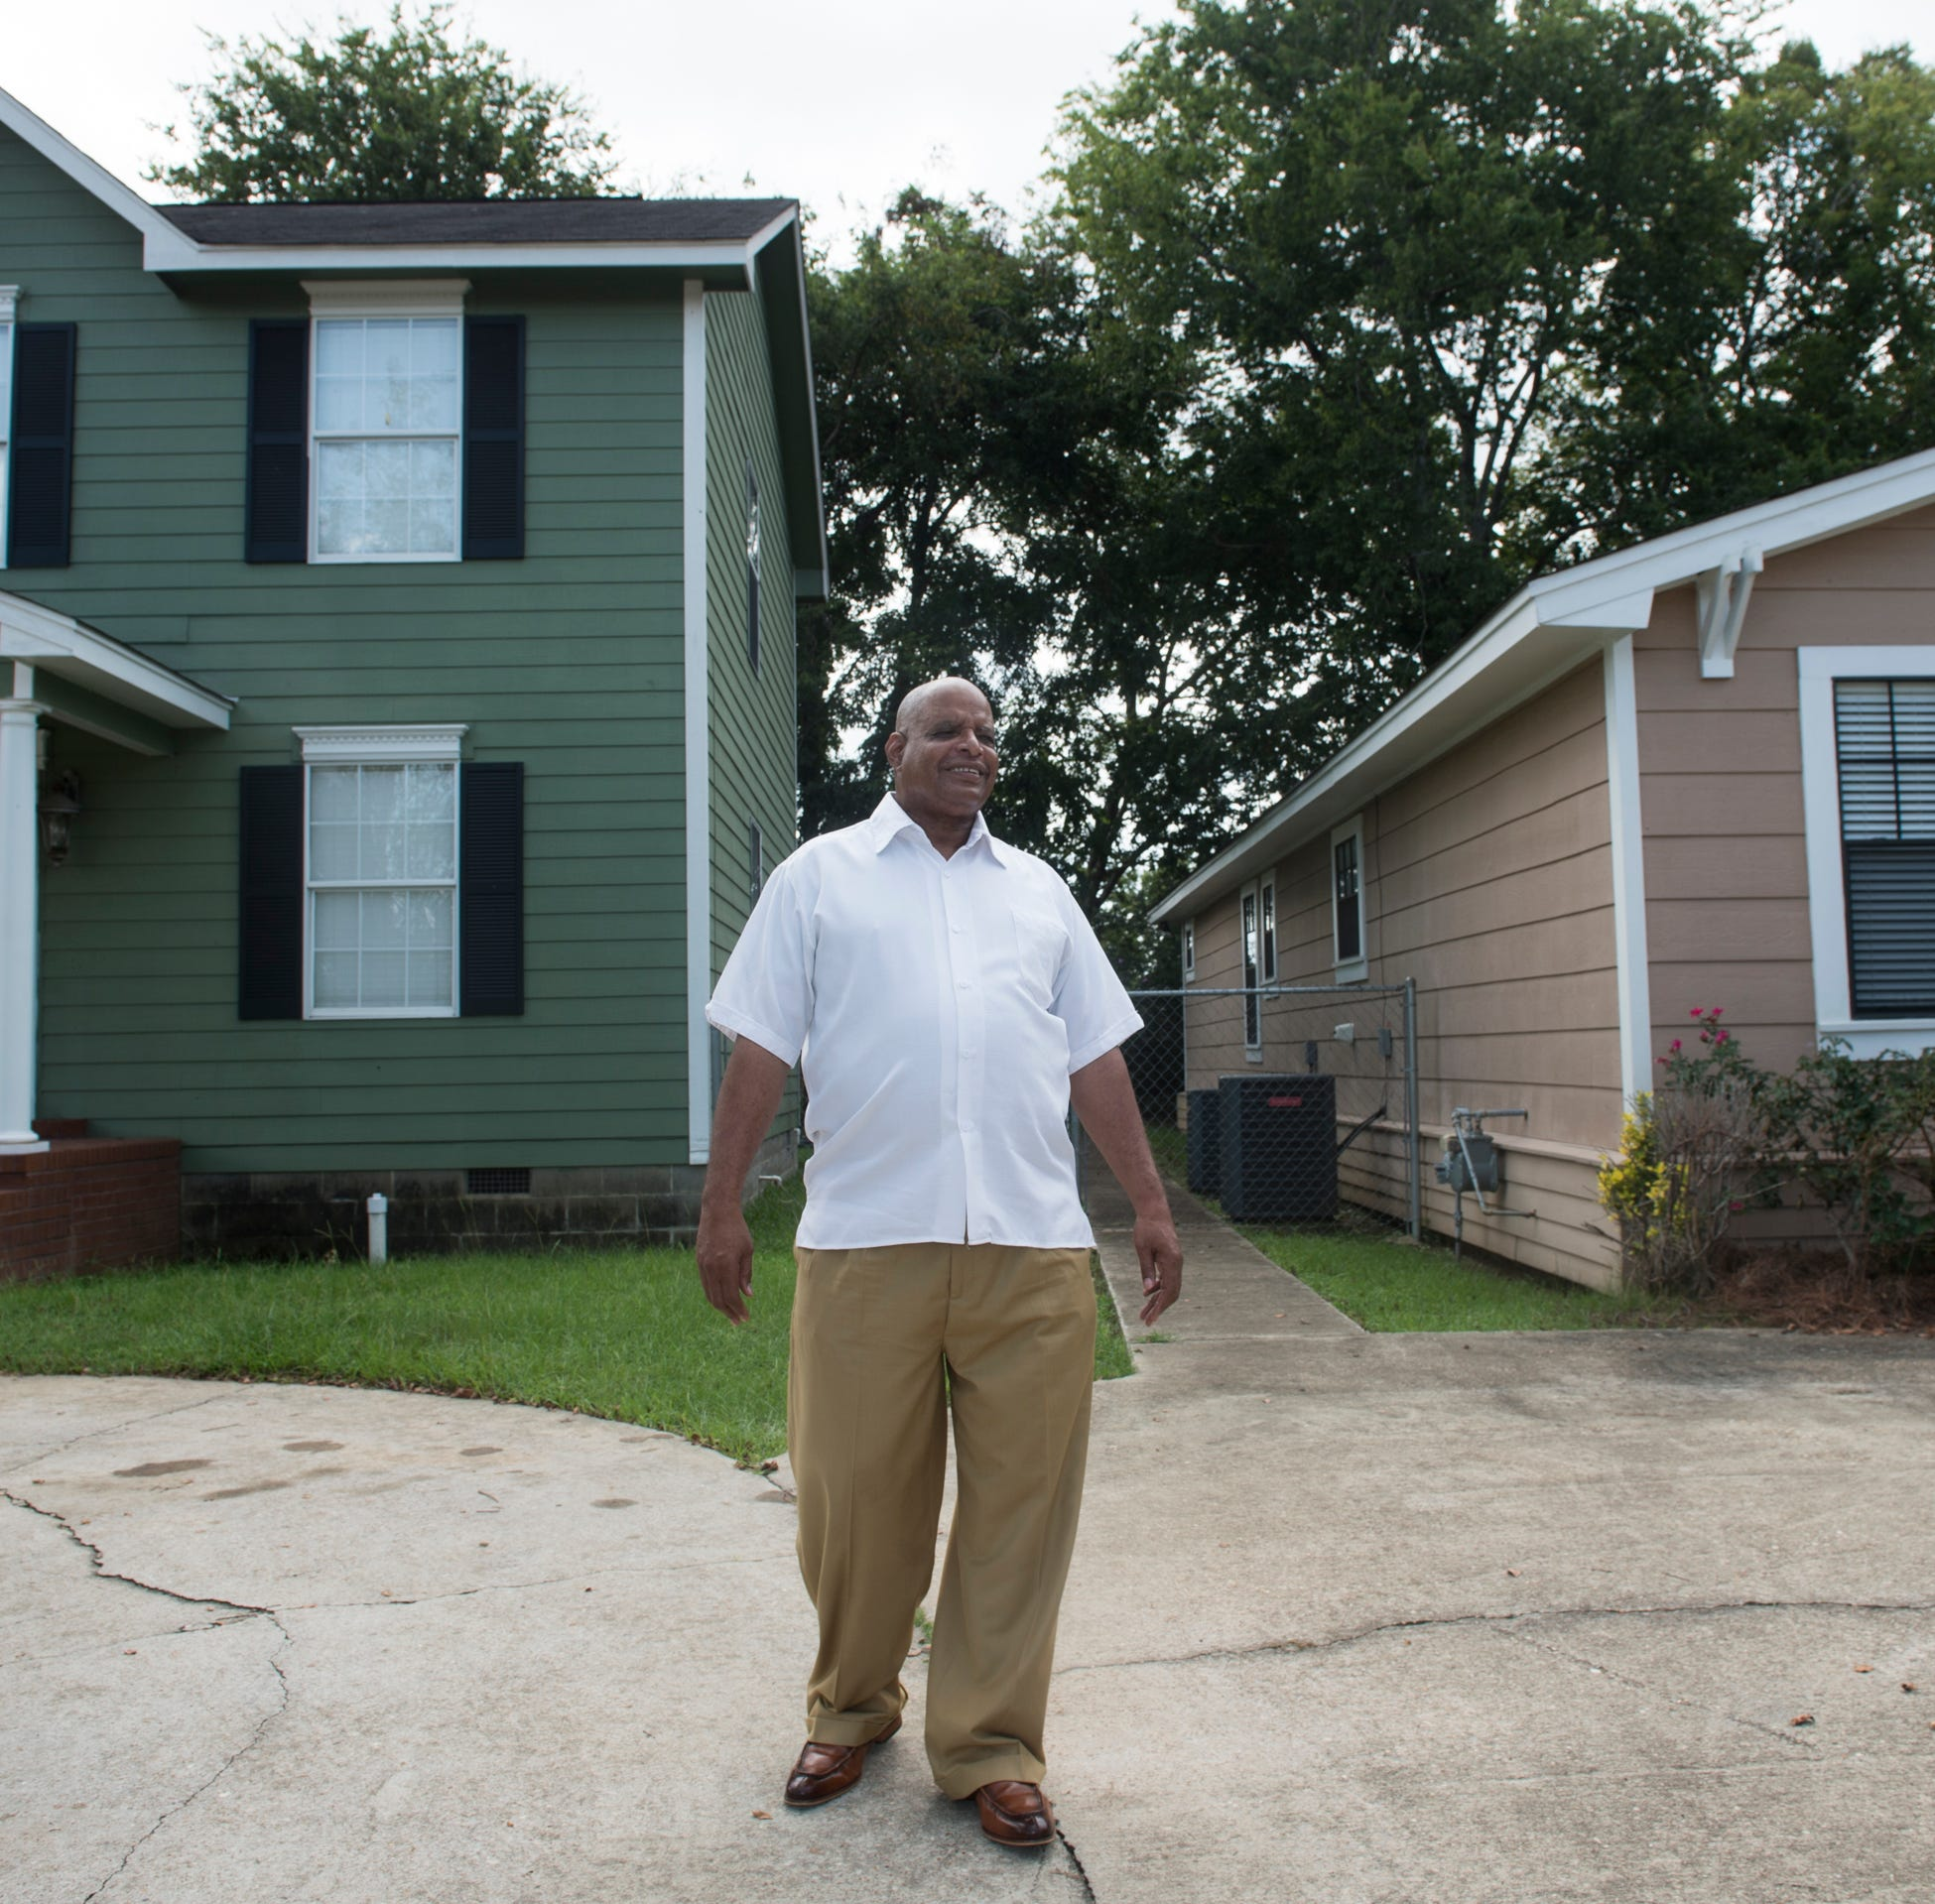 How a pastor improved his west side neighborhood one house at a time